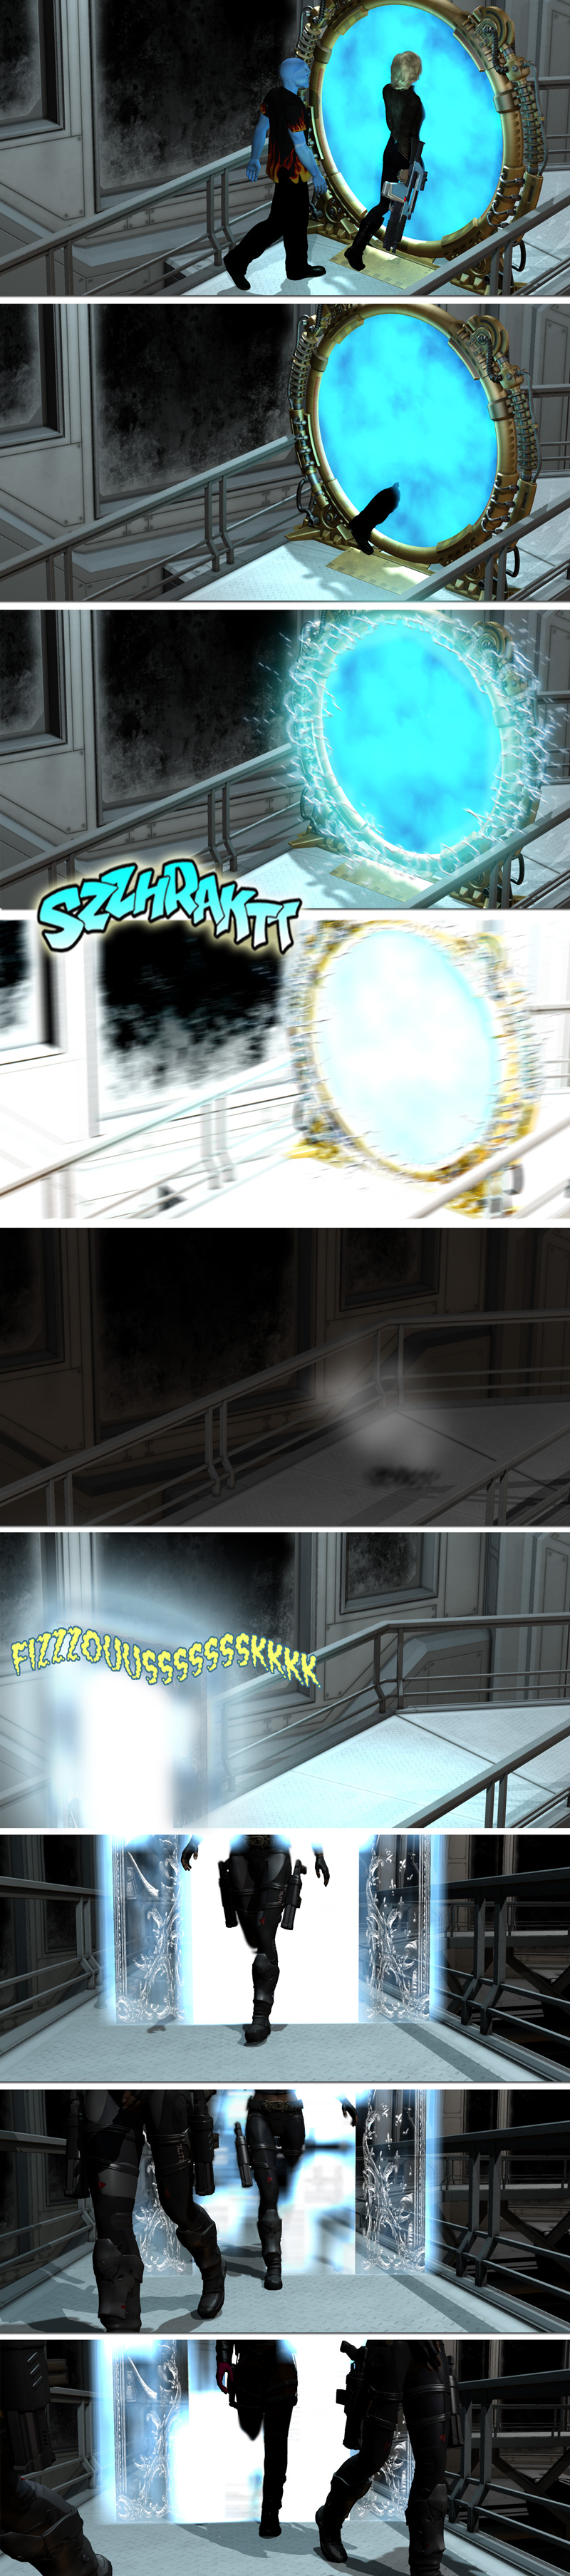 Chapter 9, page 28